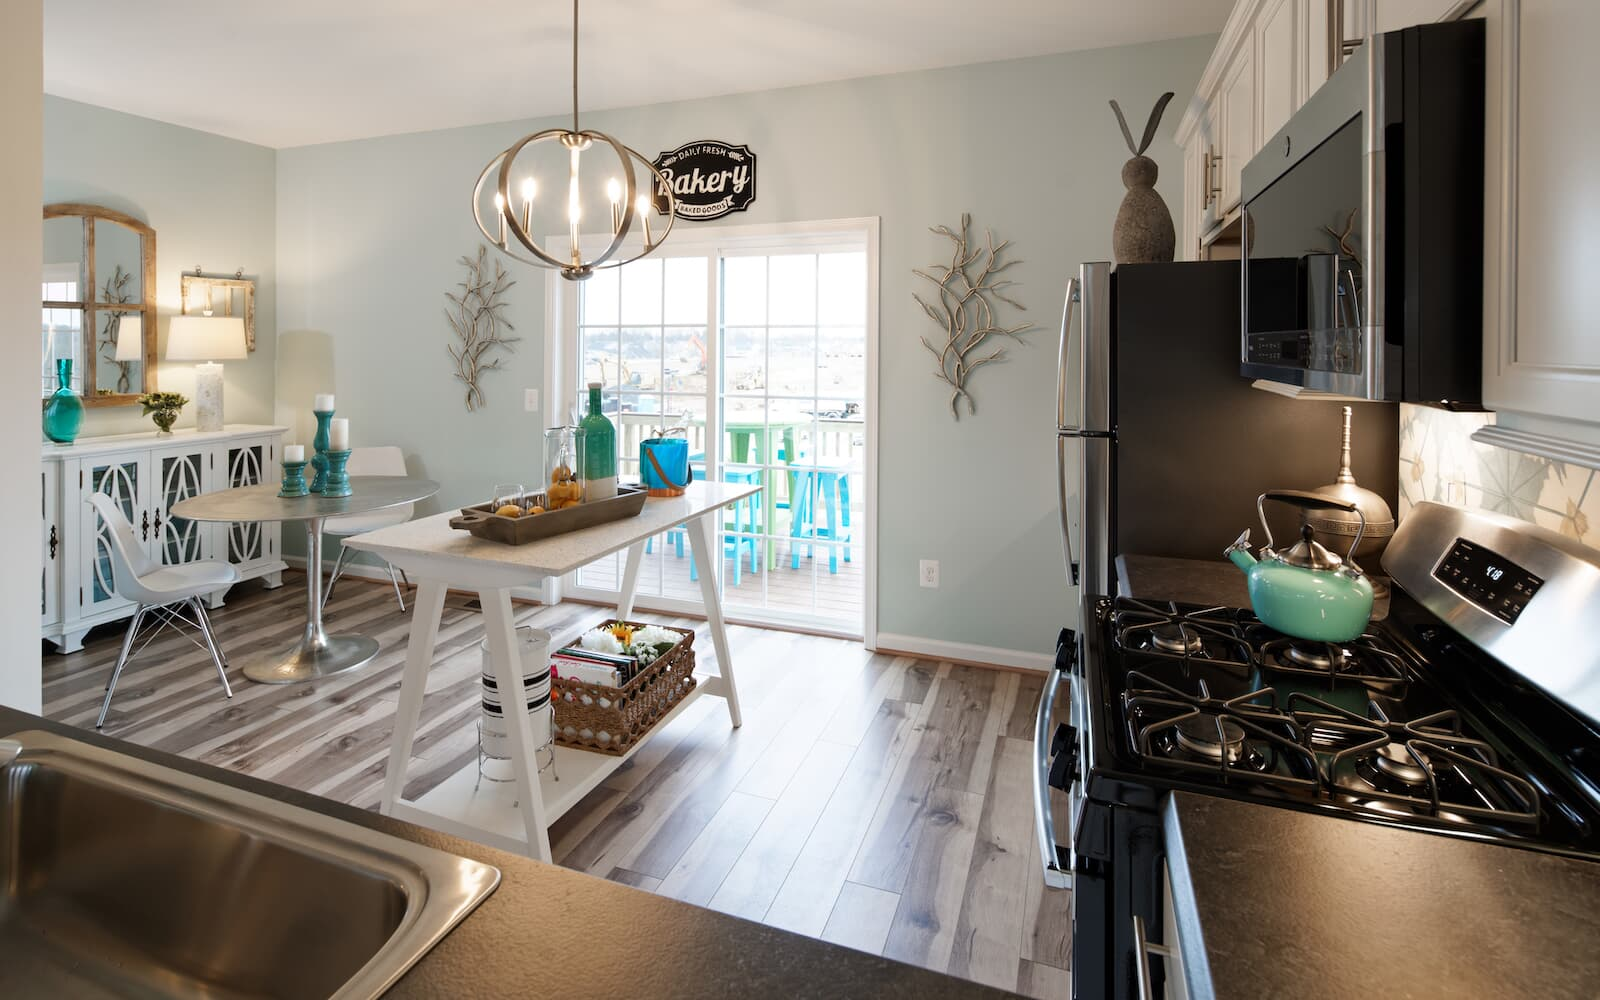 Skyline-kitchen-townhomes-winchester-va-snowden-bridge-brookfield-residential